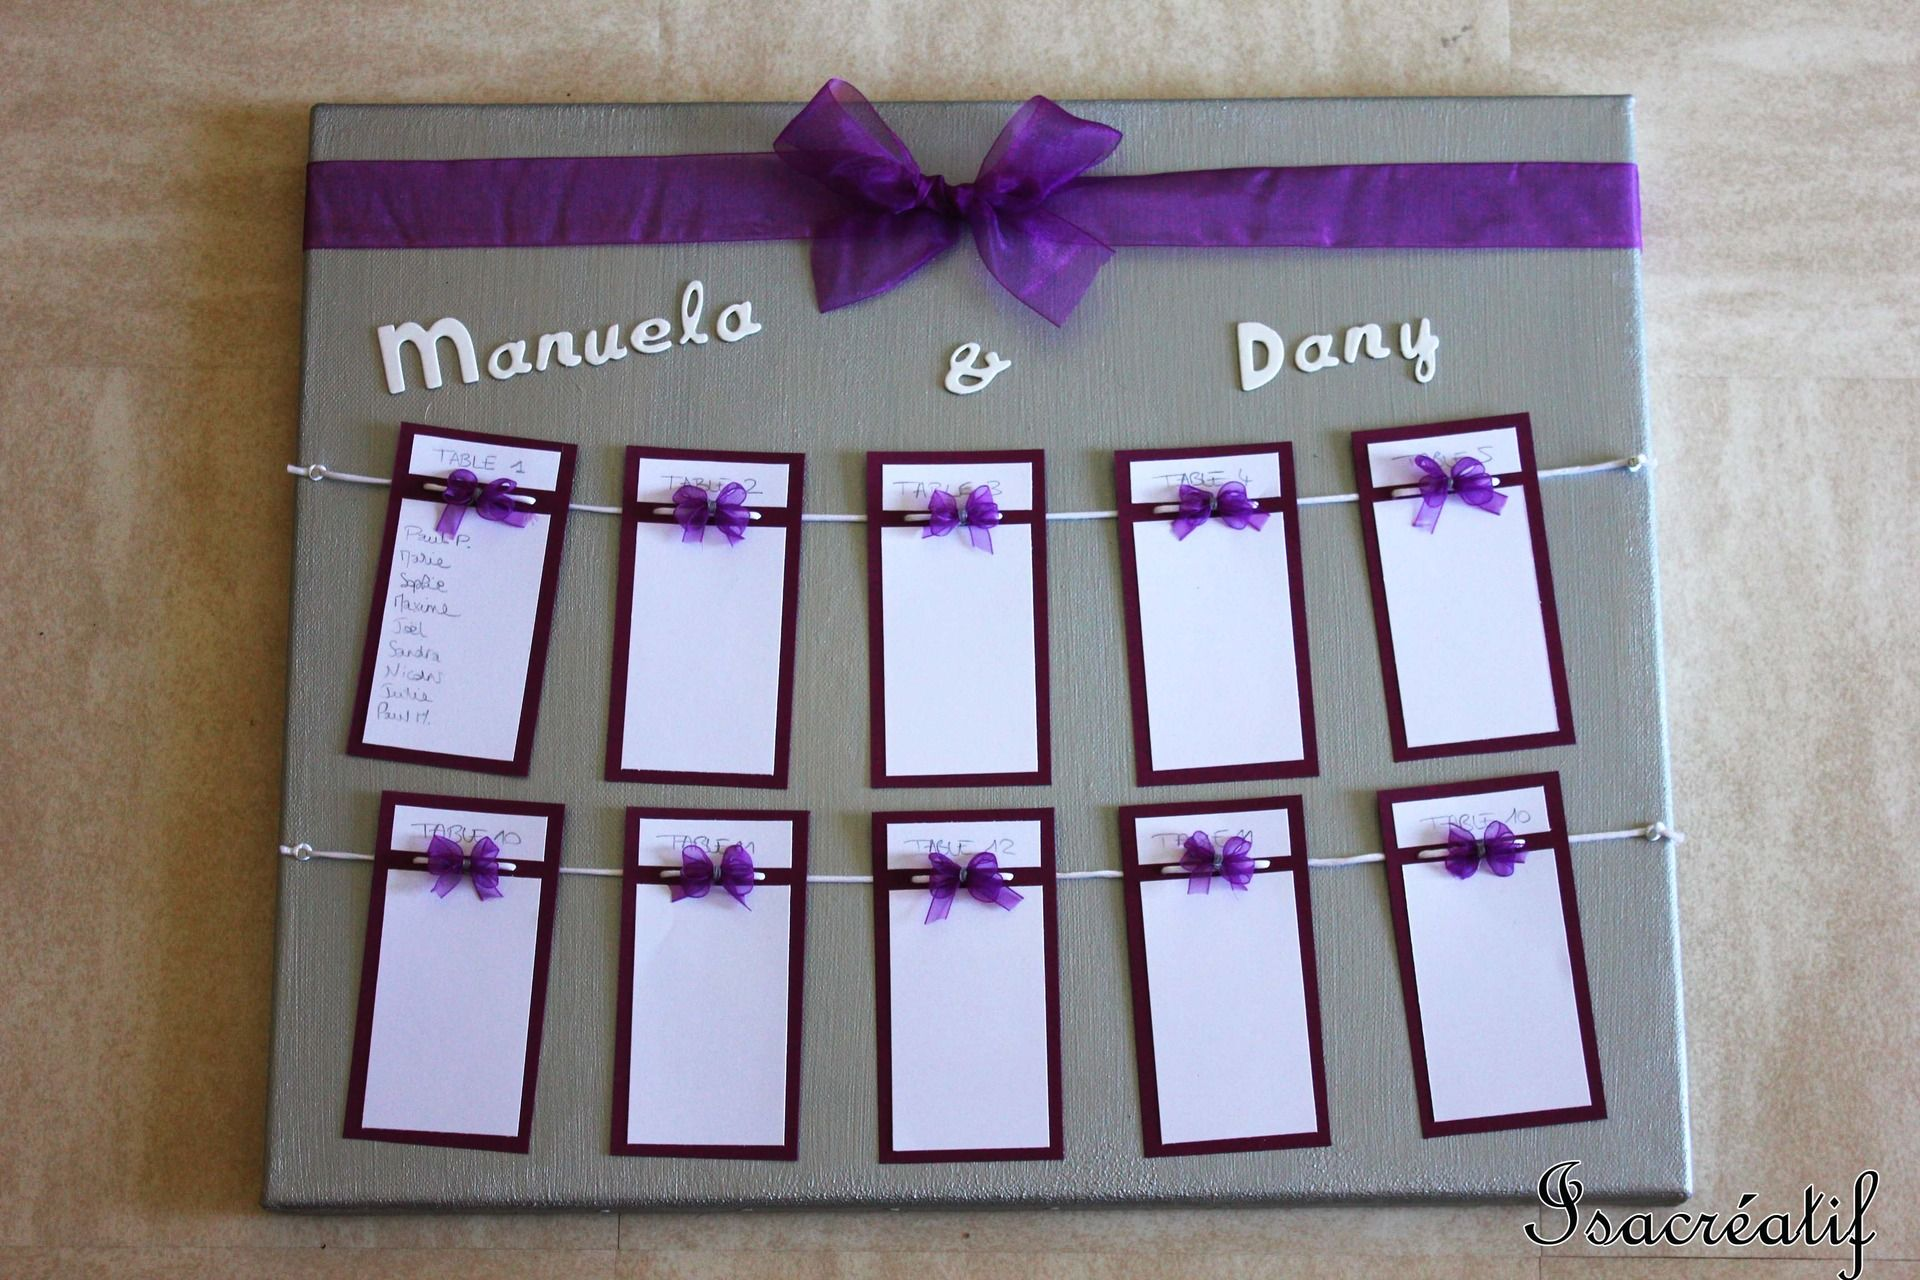 plan de table pour mariage violet et argent mariage plan de tables and violets. Black Bedroom Furniture Sets. Home Design Ideas